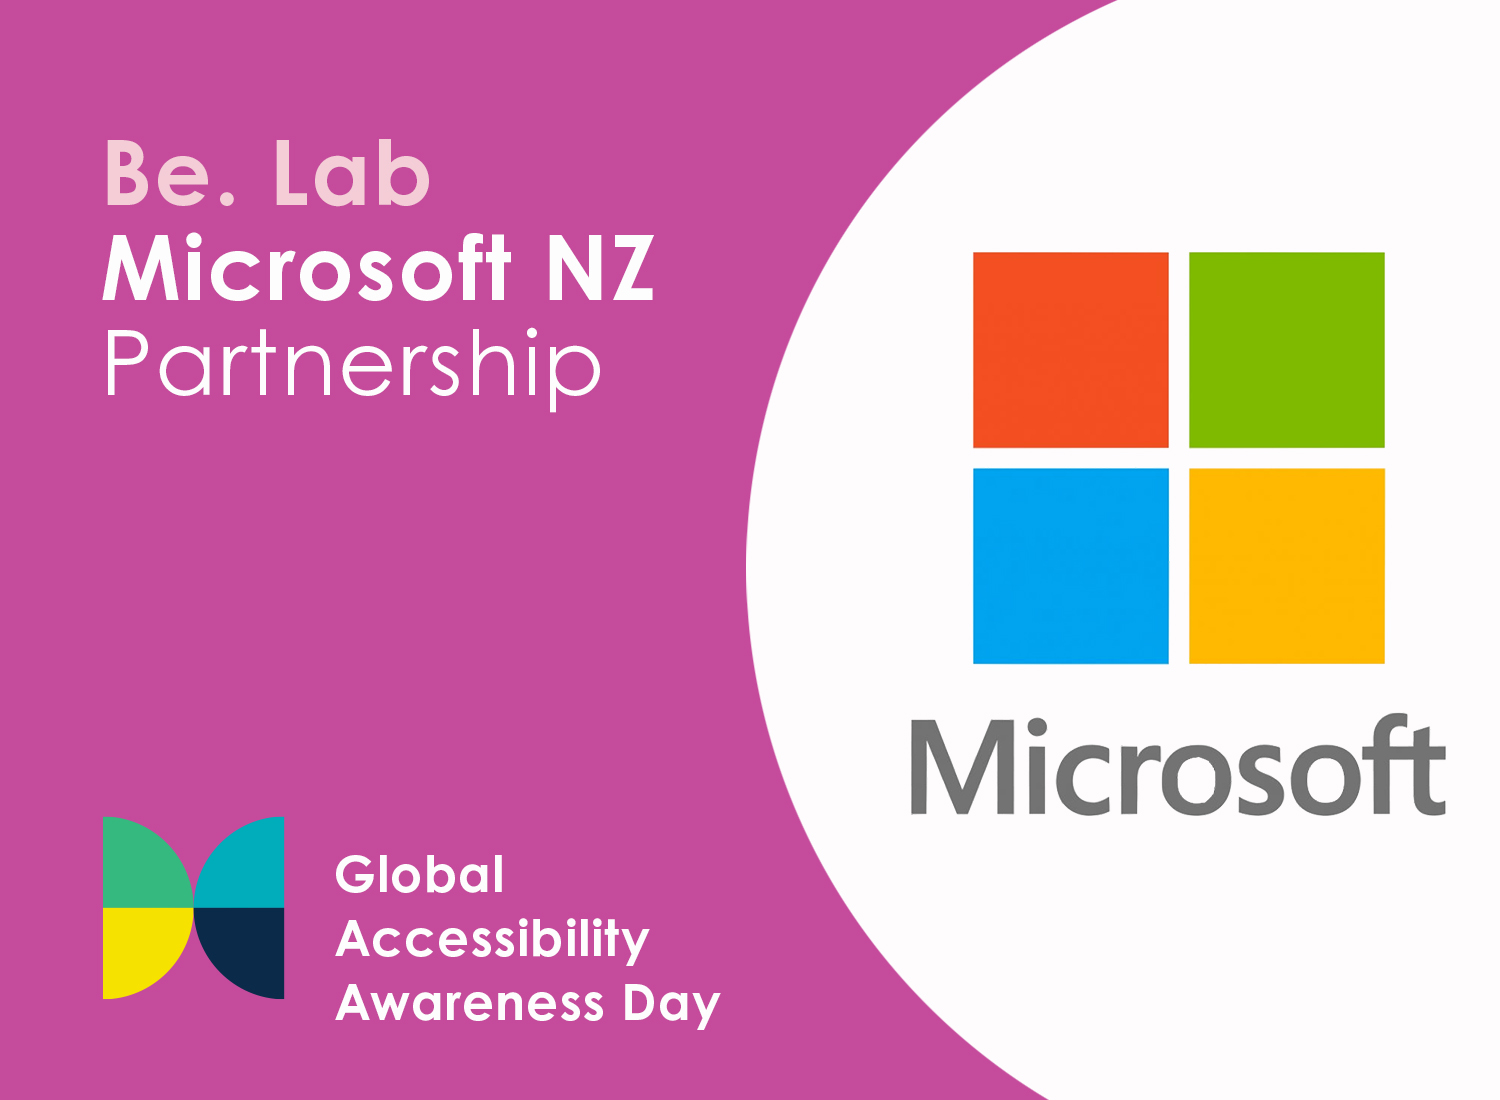 Pink background with the text: Be. Lab Microsoft Partnership; Global Accessibility Awareness Day. A circle with the Microsoft logo.